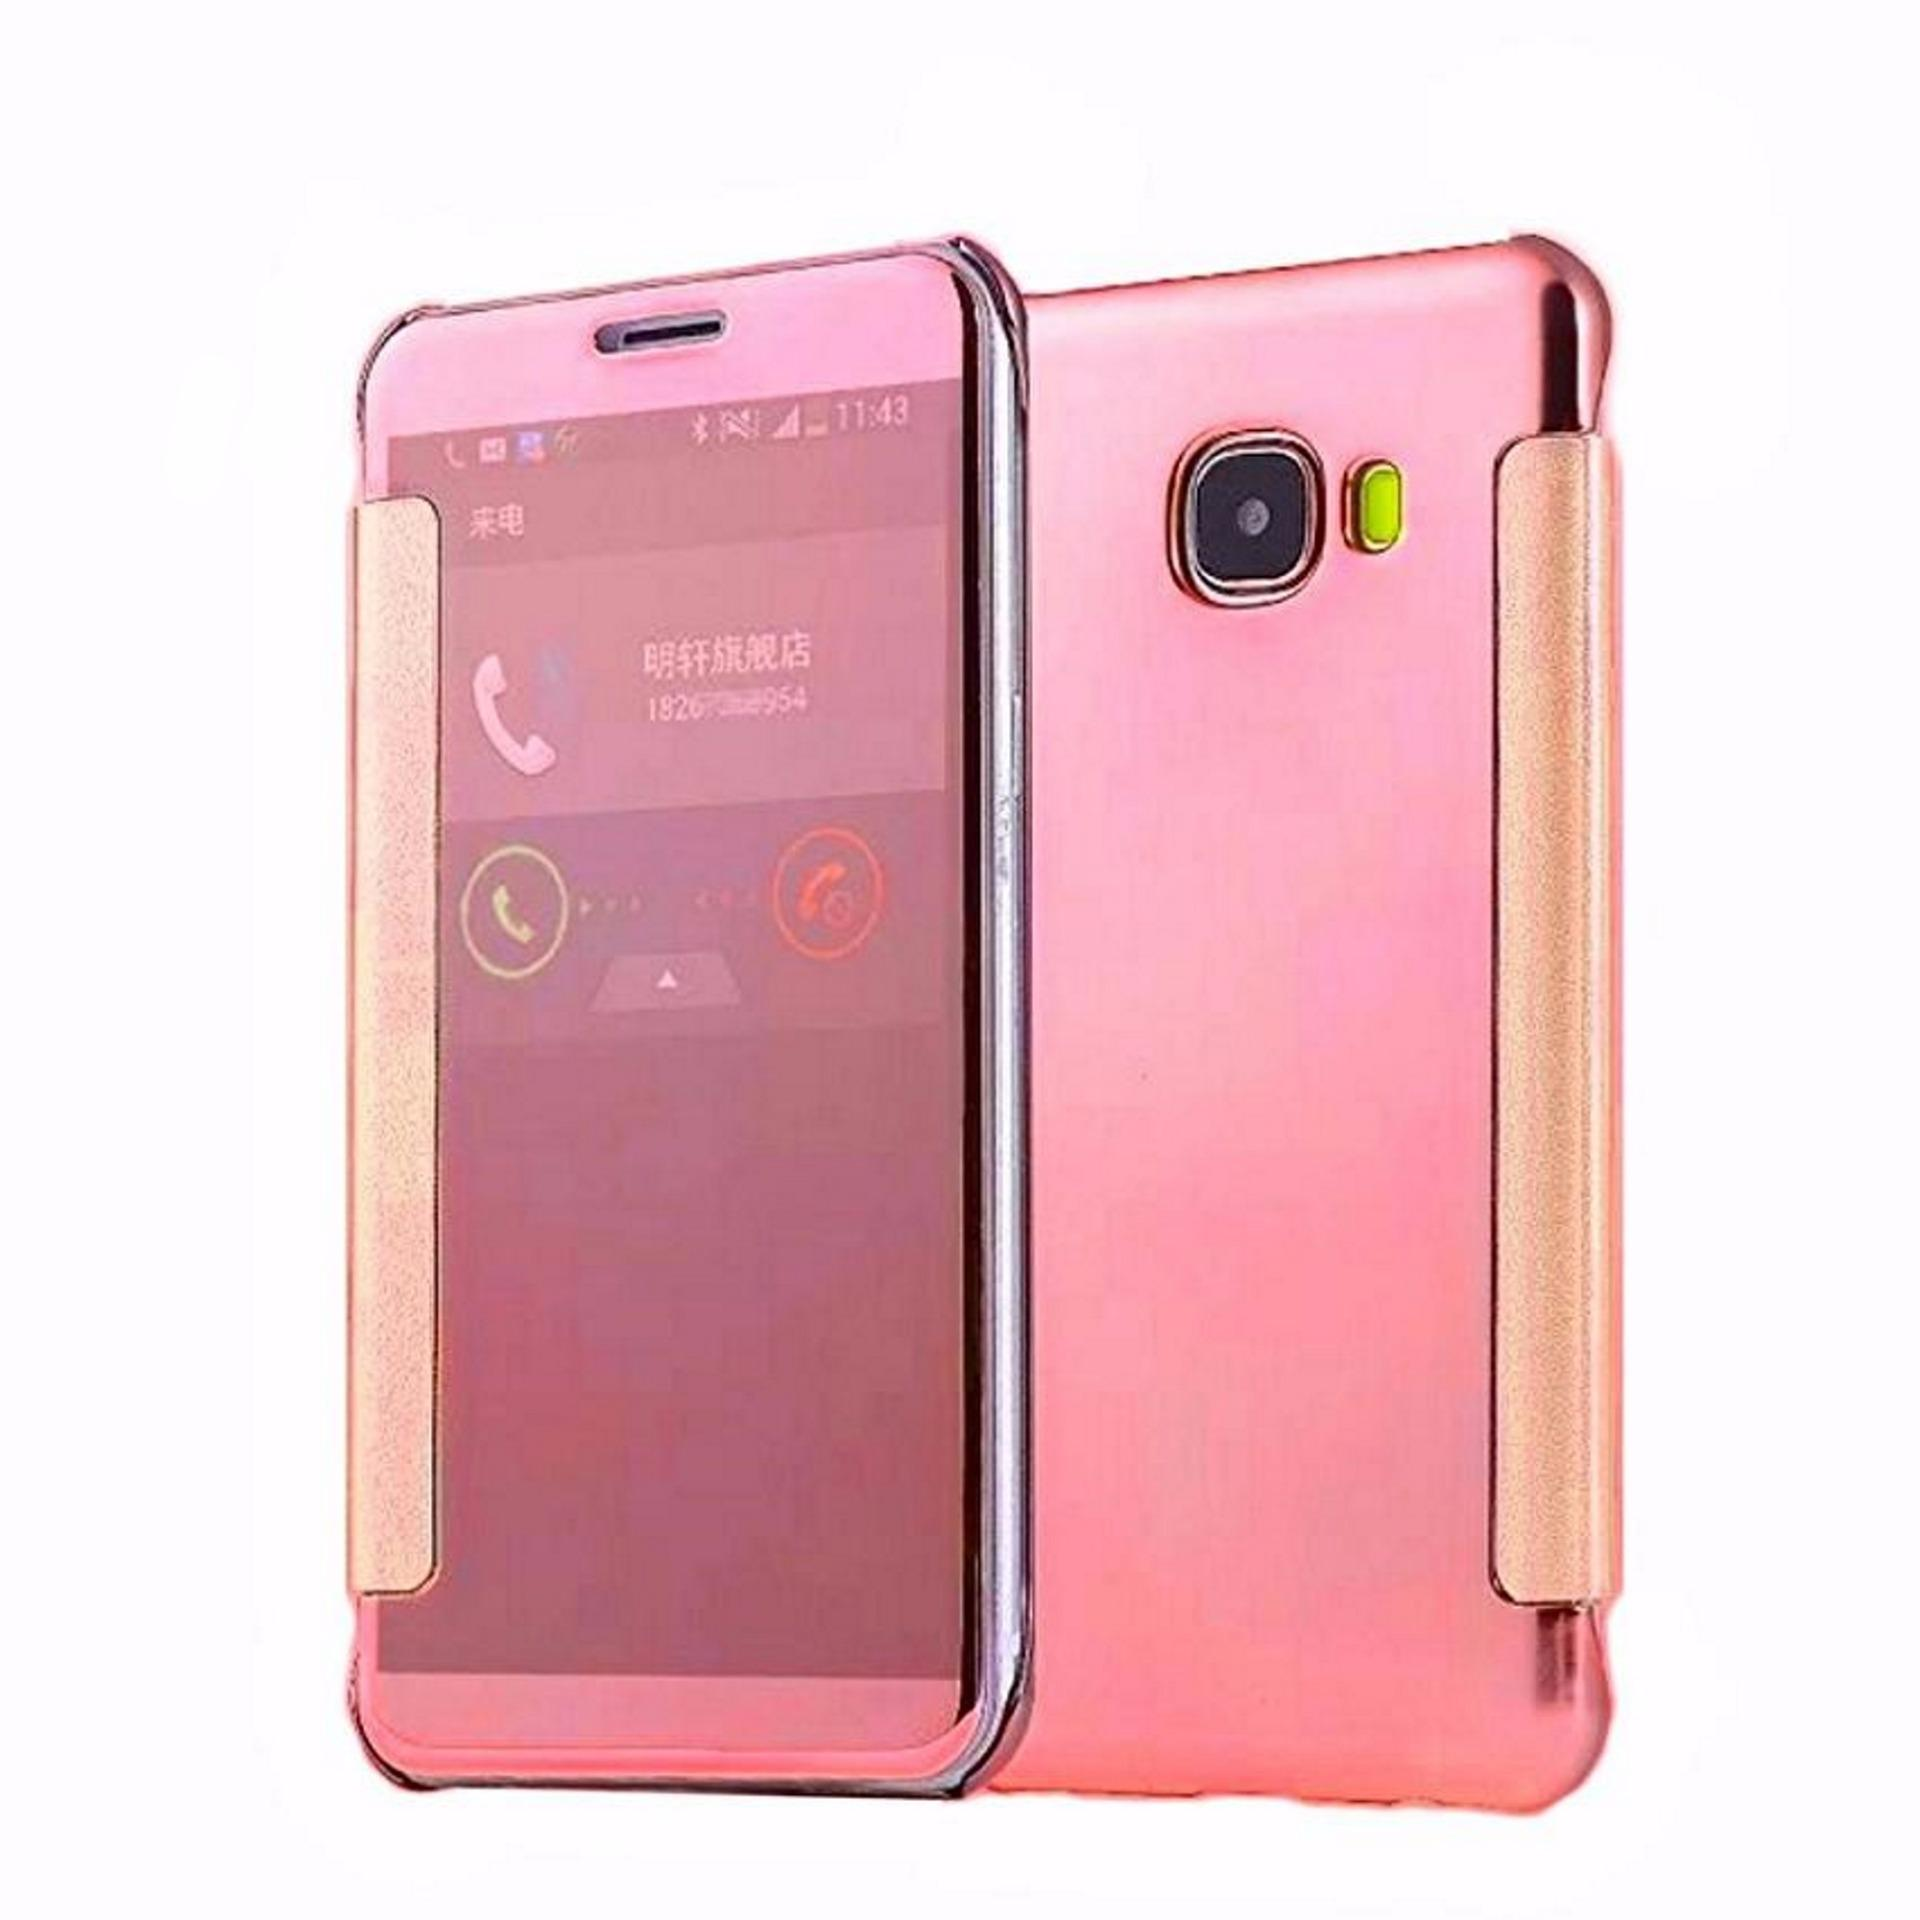 Clear Cover Flip View For Samsung Galaxy A5 2017 Rosegold Lazada PH Source · kwmobile TPU Silicone Case for Samsung ...